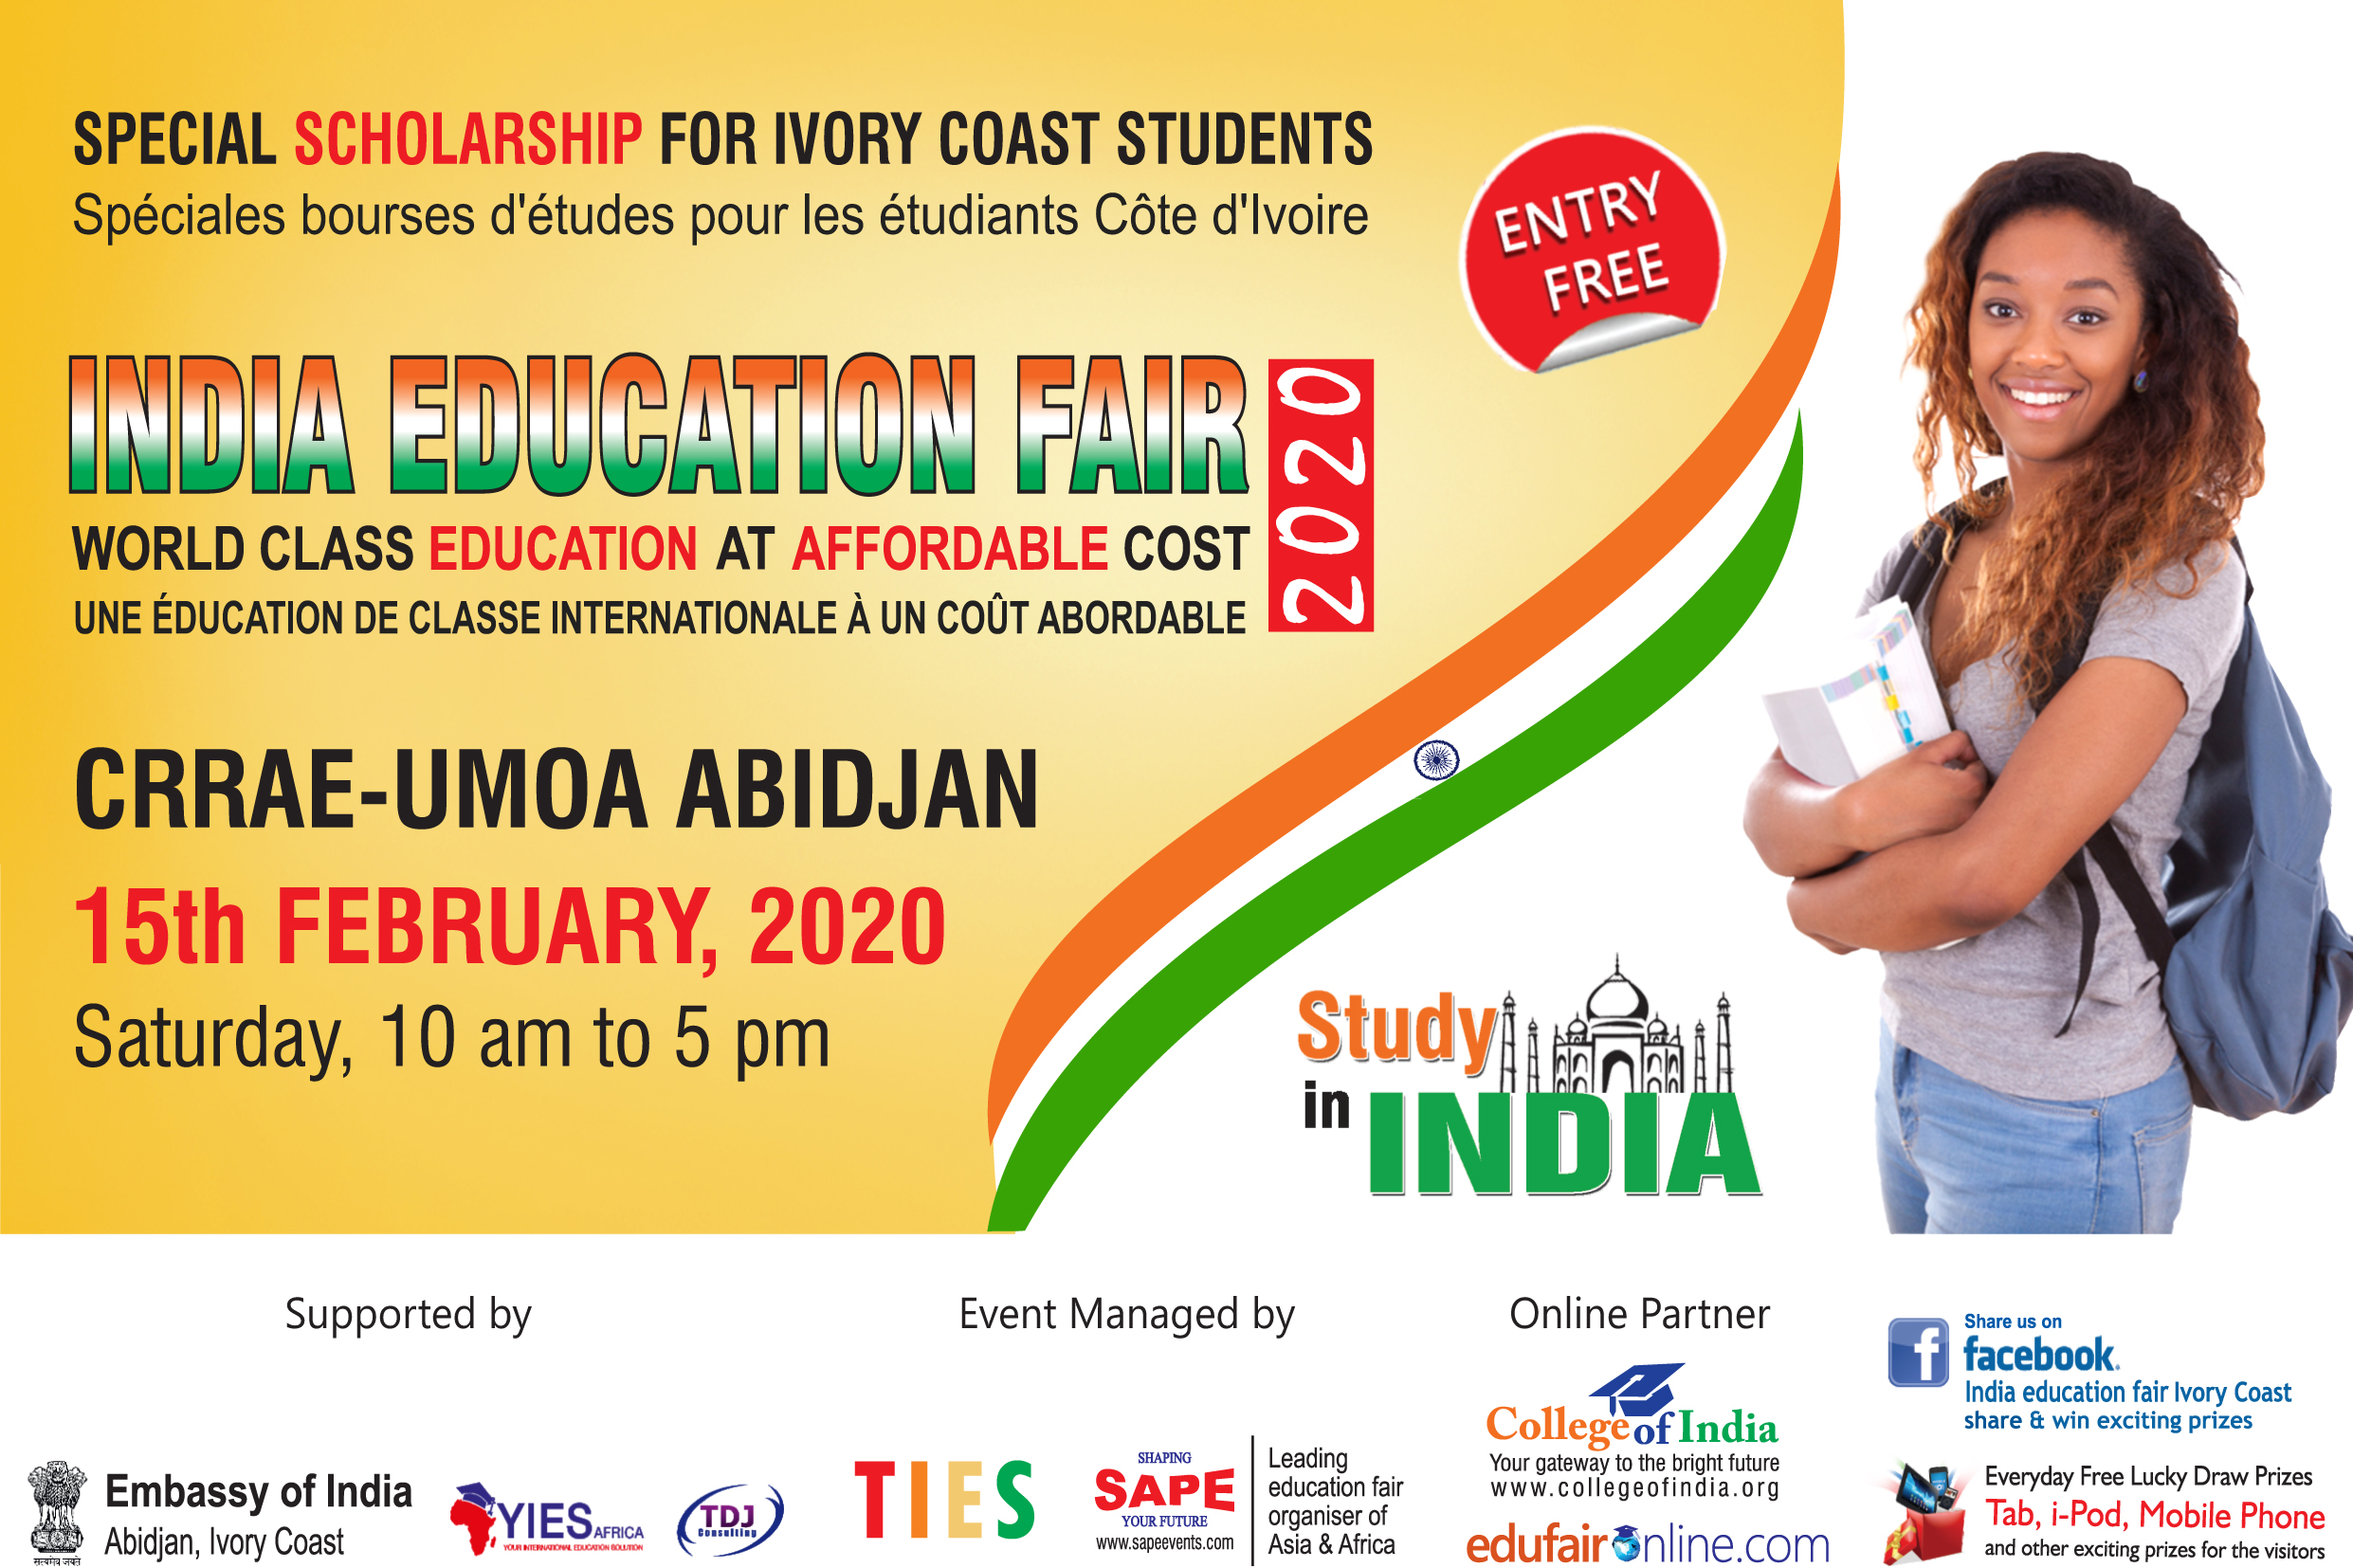 2ND INDIA EDUCATION FAIR IVORY COAST